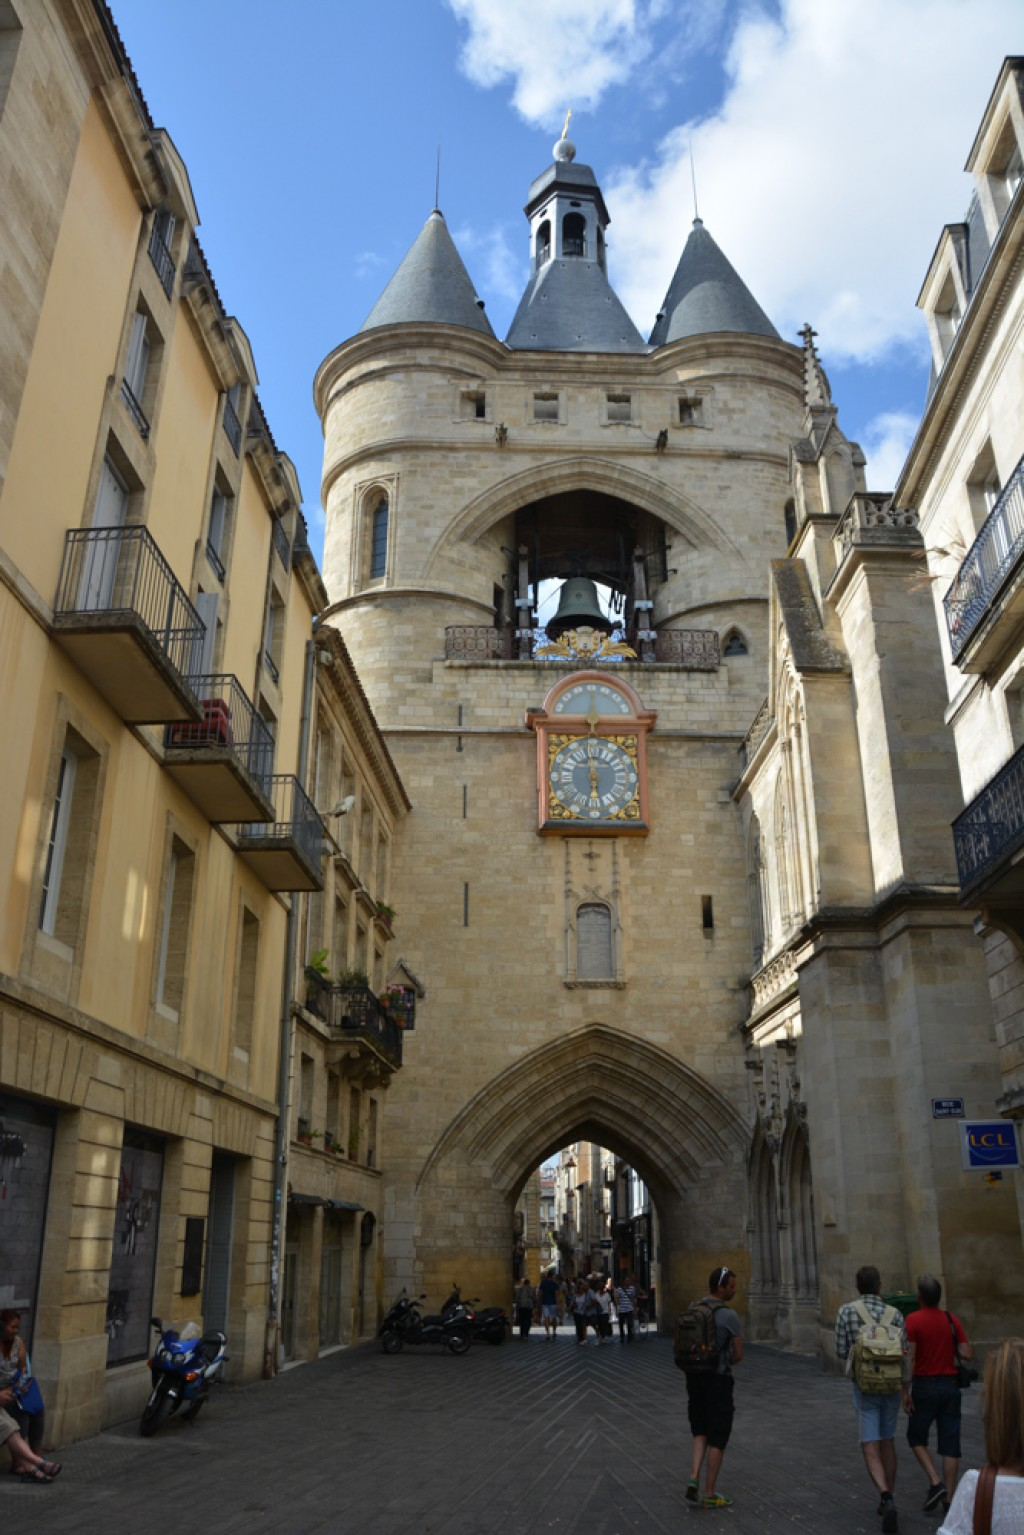 Bordeaux was a great base for exploring the surrounding wine country and a day trip to the Dune du Pilat. It is also a beautiful city in itself, with a great museum and lovely river.